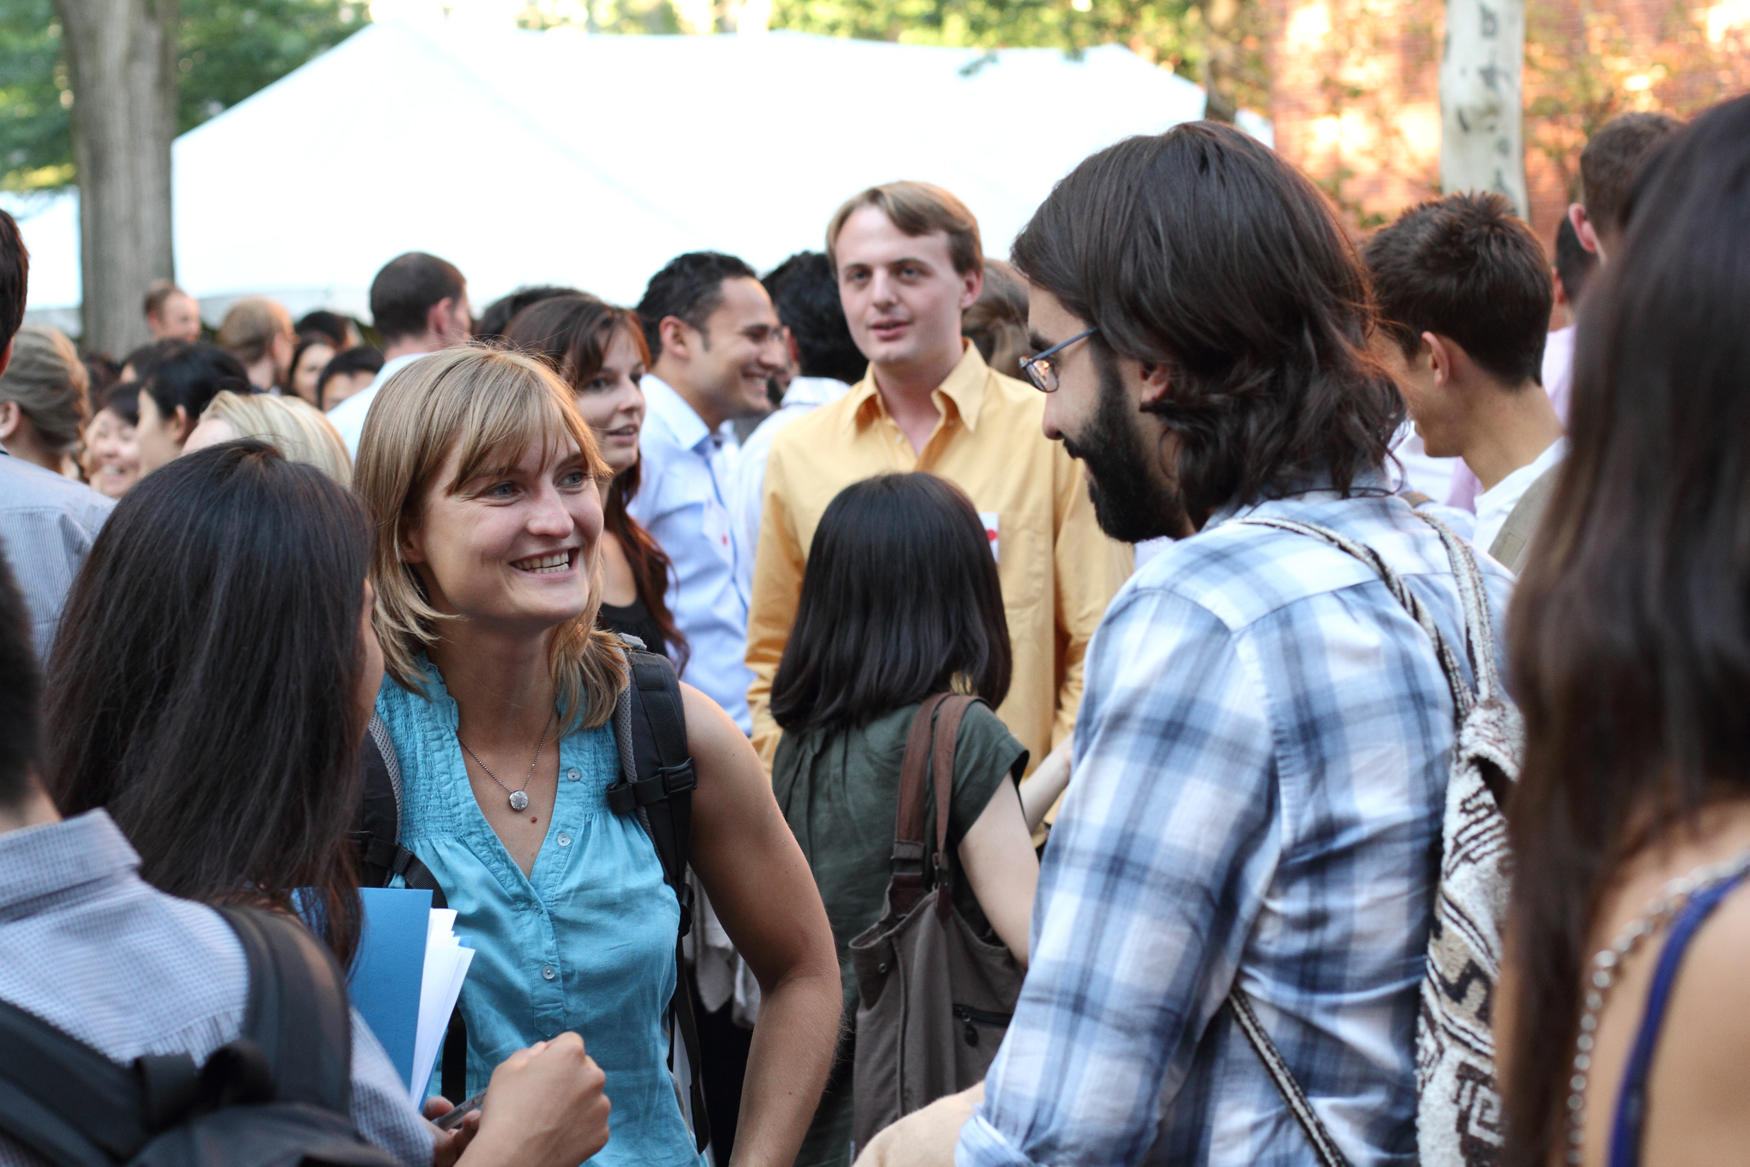 Two researchers mingle at an outdoor social event